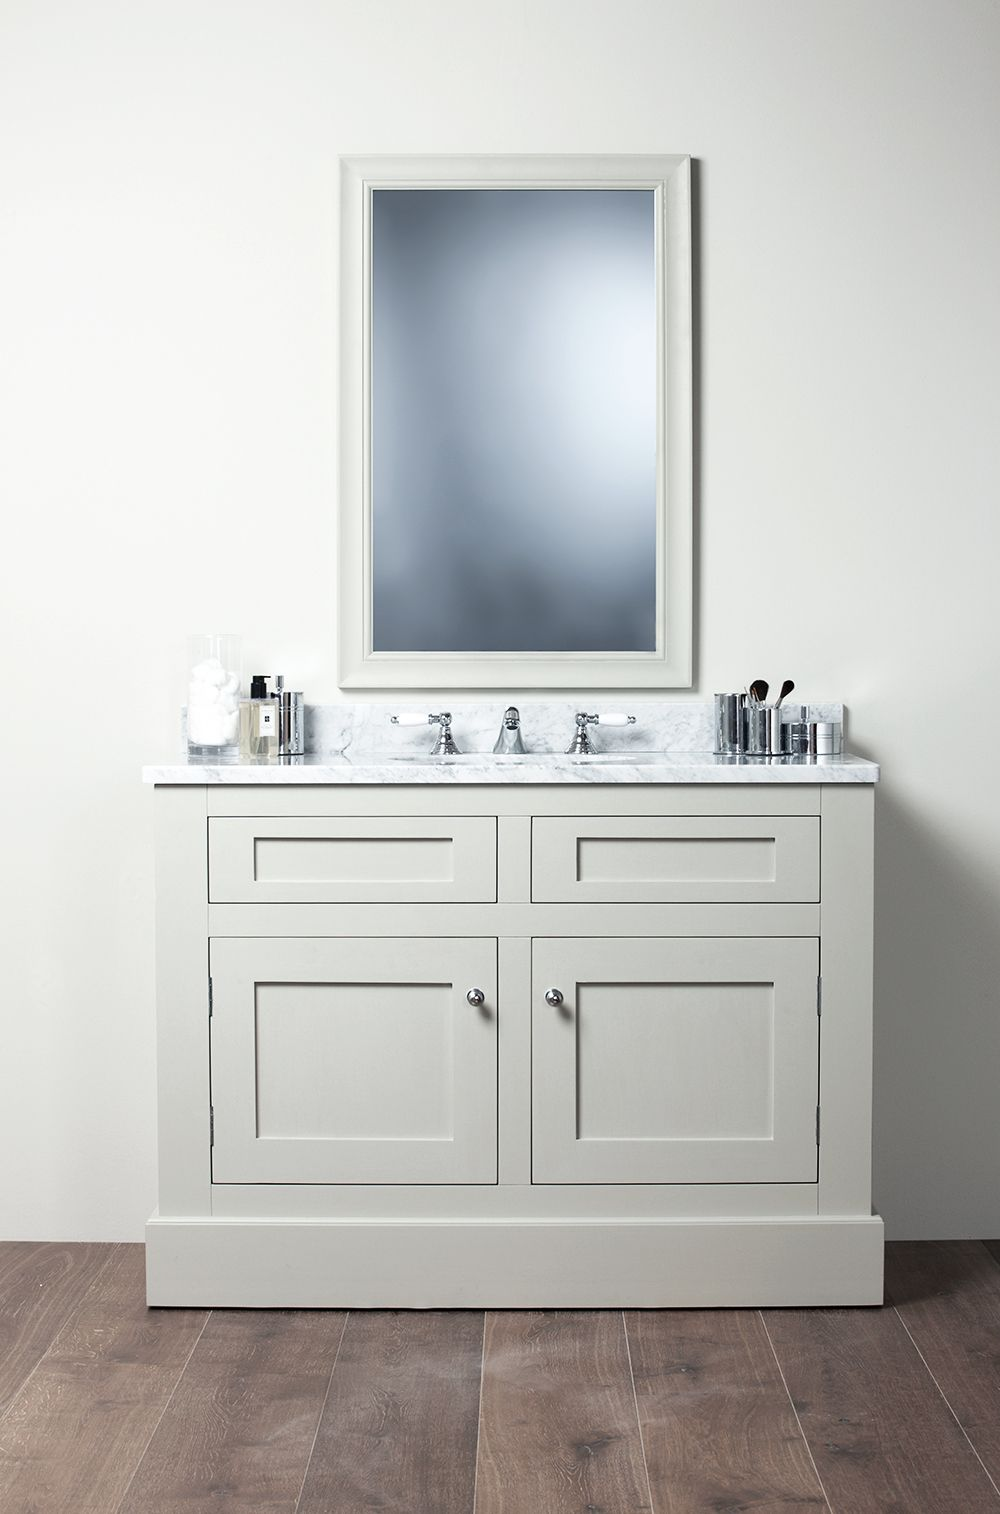 Shaker Style Bathroom Vanity Unit: Shaker Bathroom Vanity Unit Under Sink  Cabinet Ebay Home ,